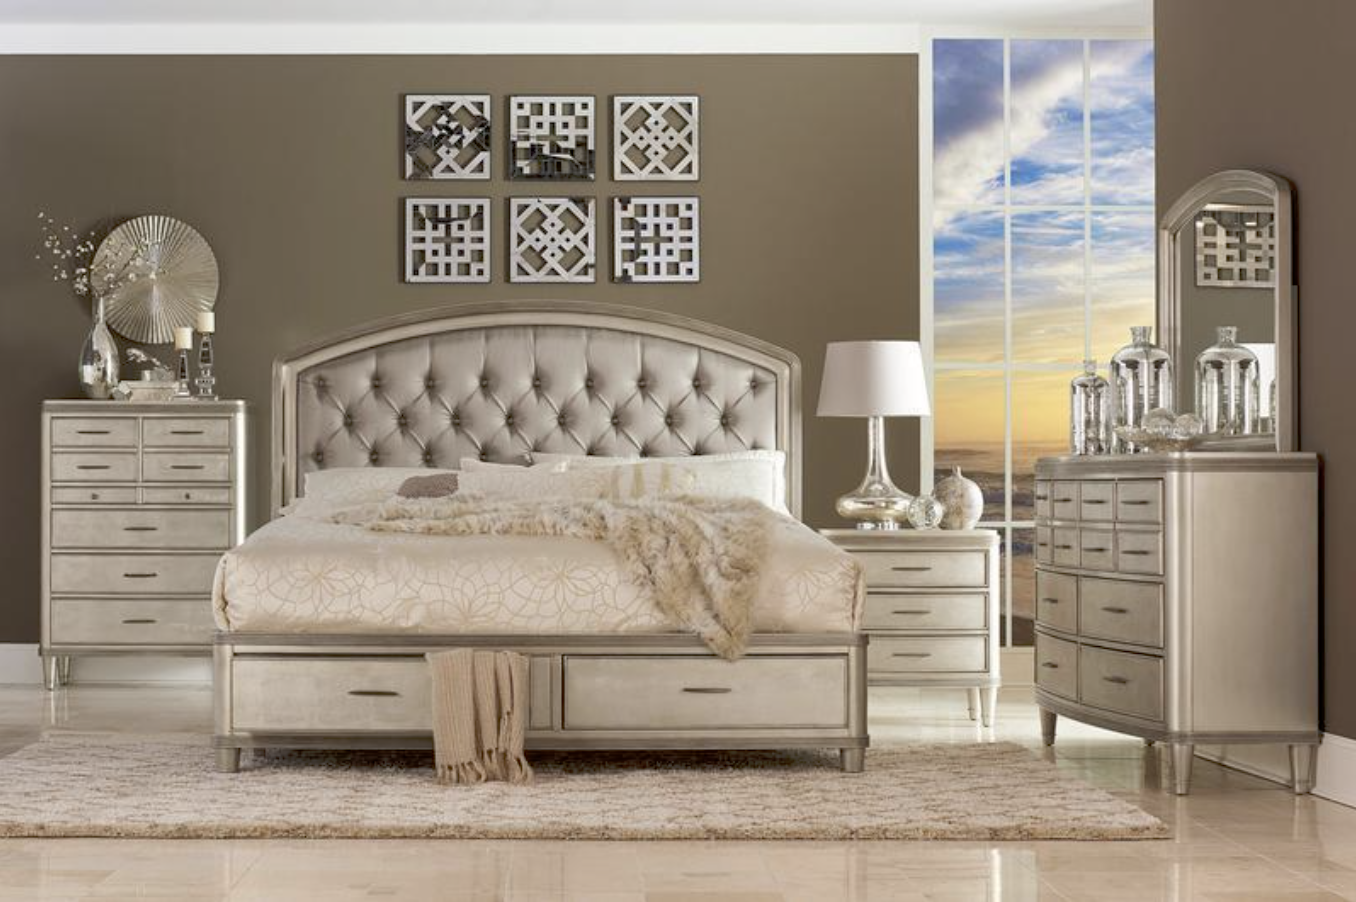 The Tandie Bedroom Collection By Homelegance Furniture Is Such A